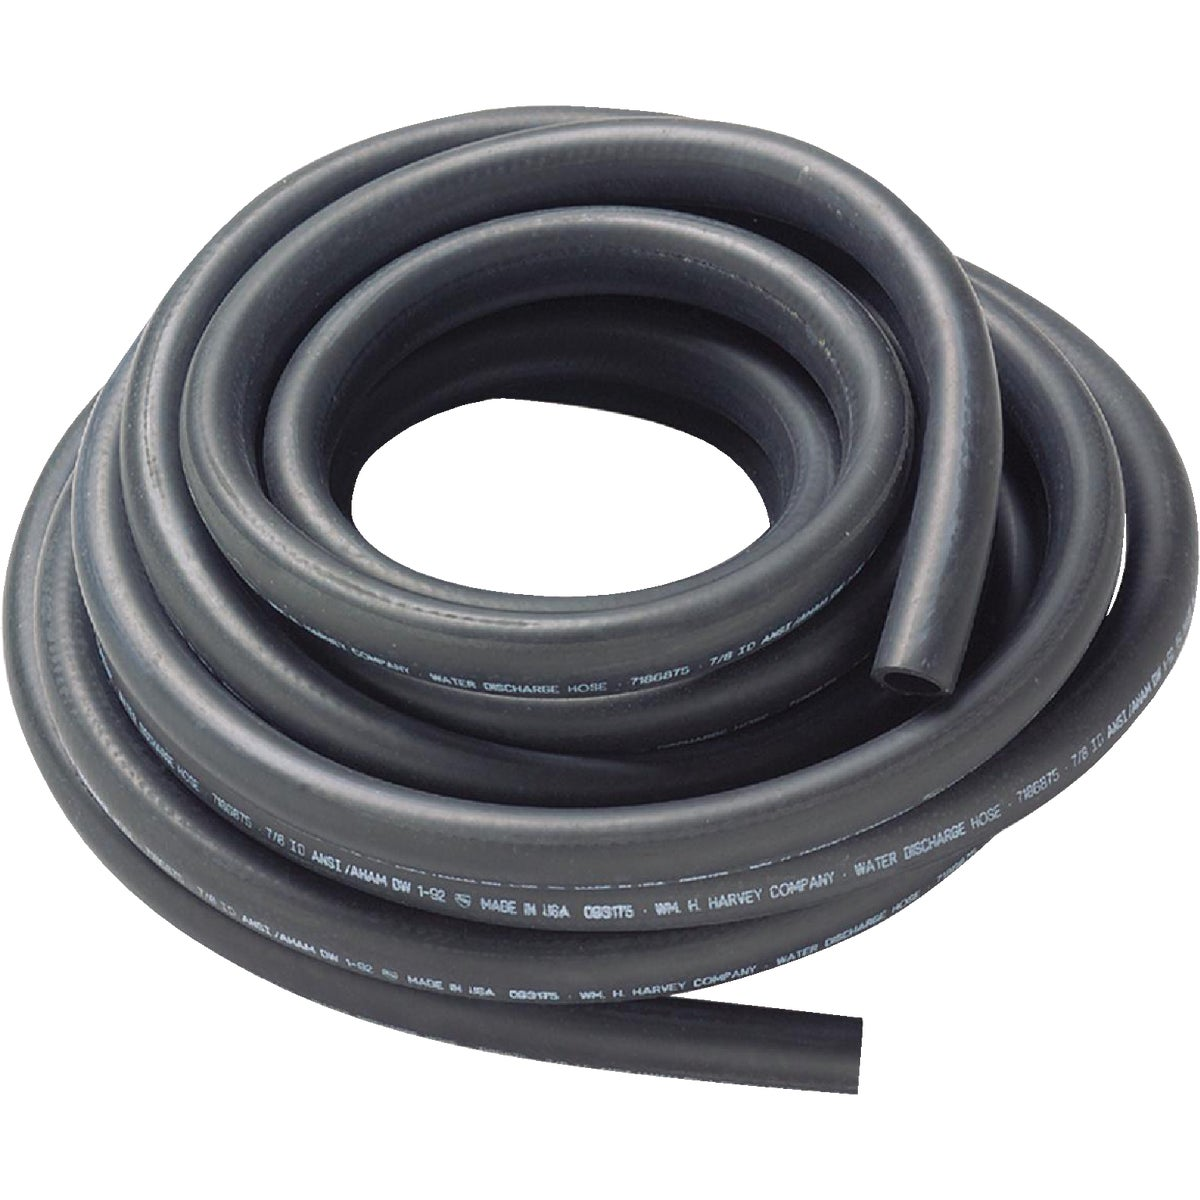 "7/8""X50' DISHWASHER HOSE - 093175 by Wm H Harvey Co"